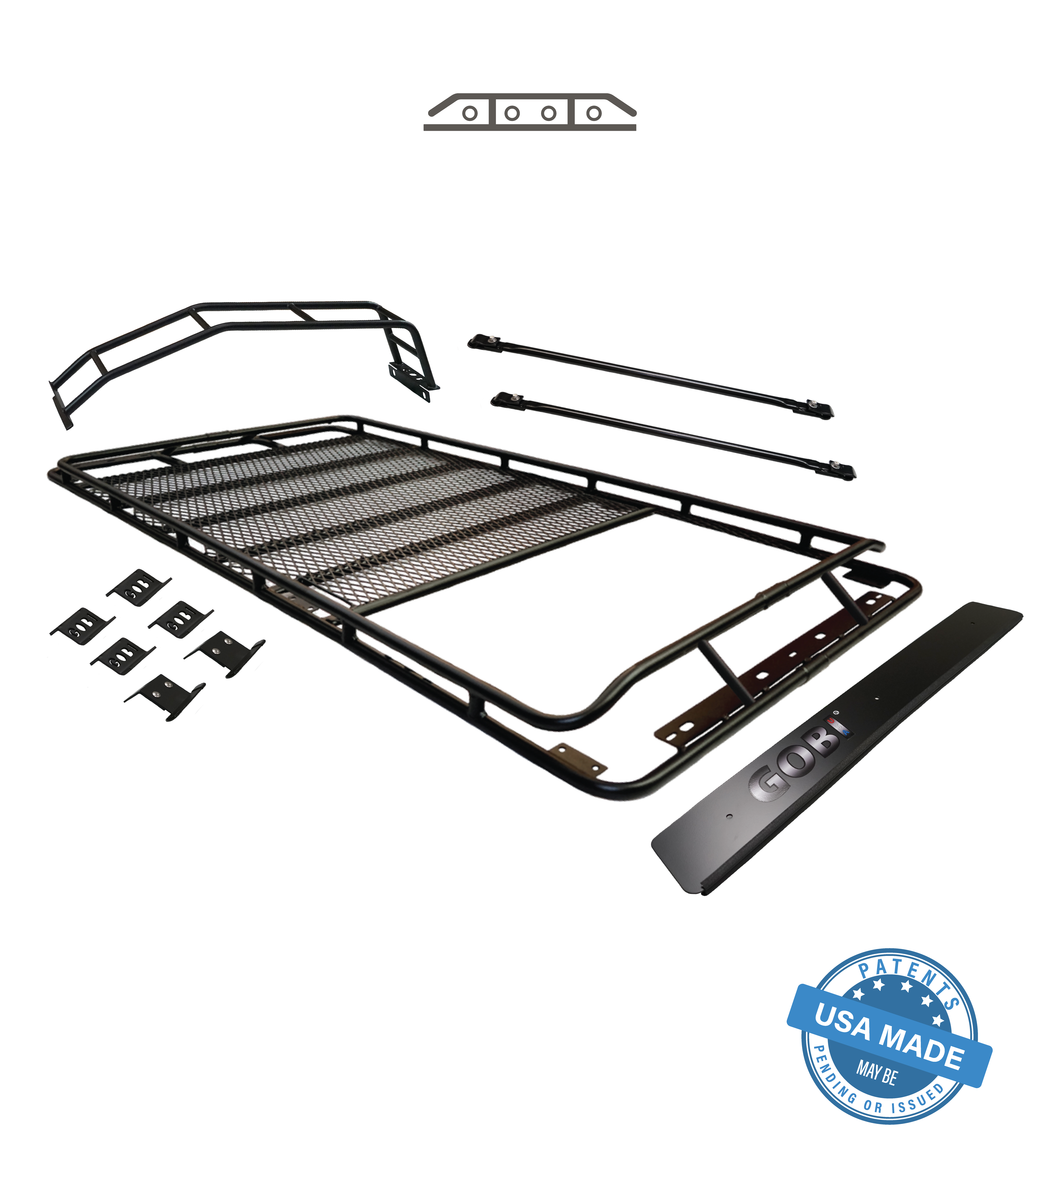 Gobi - Stealth Rack -  Sun Roof - Multi Light Set Up - Toyota 4Runner 5th Gen 2010-2021 - 4x4 Runners